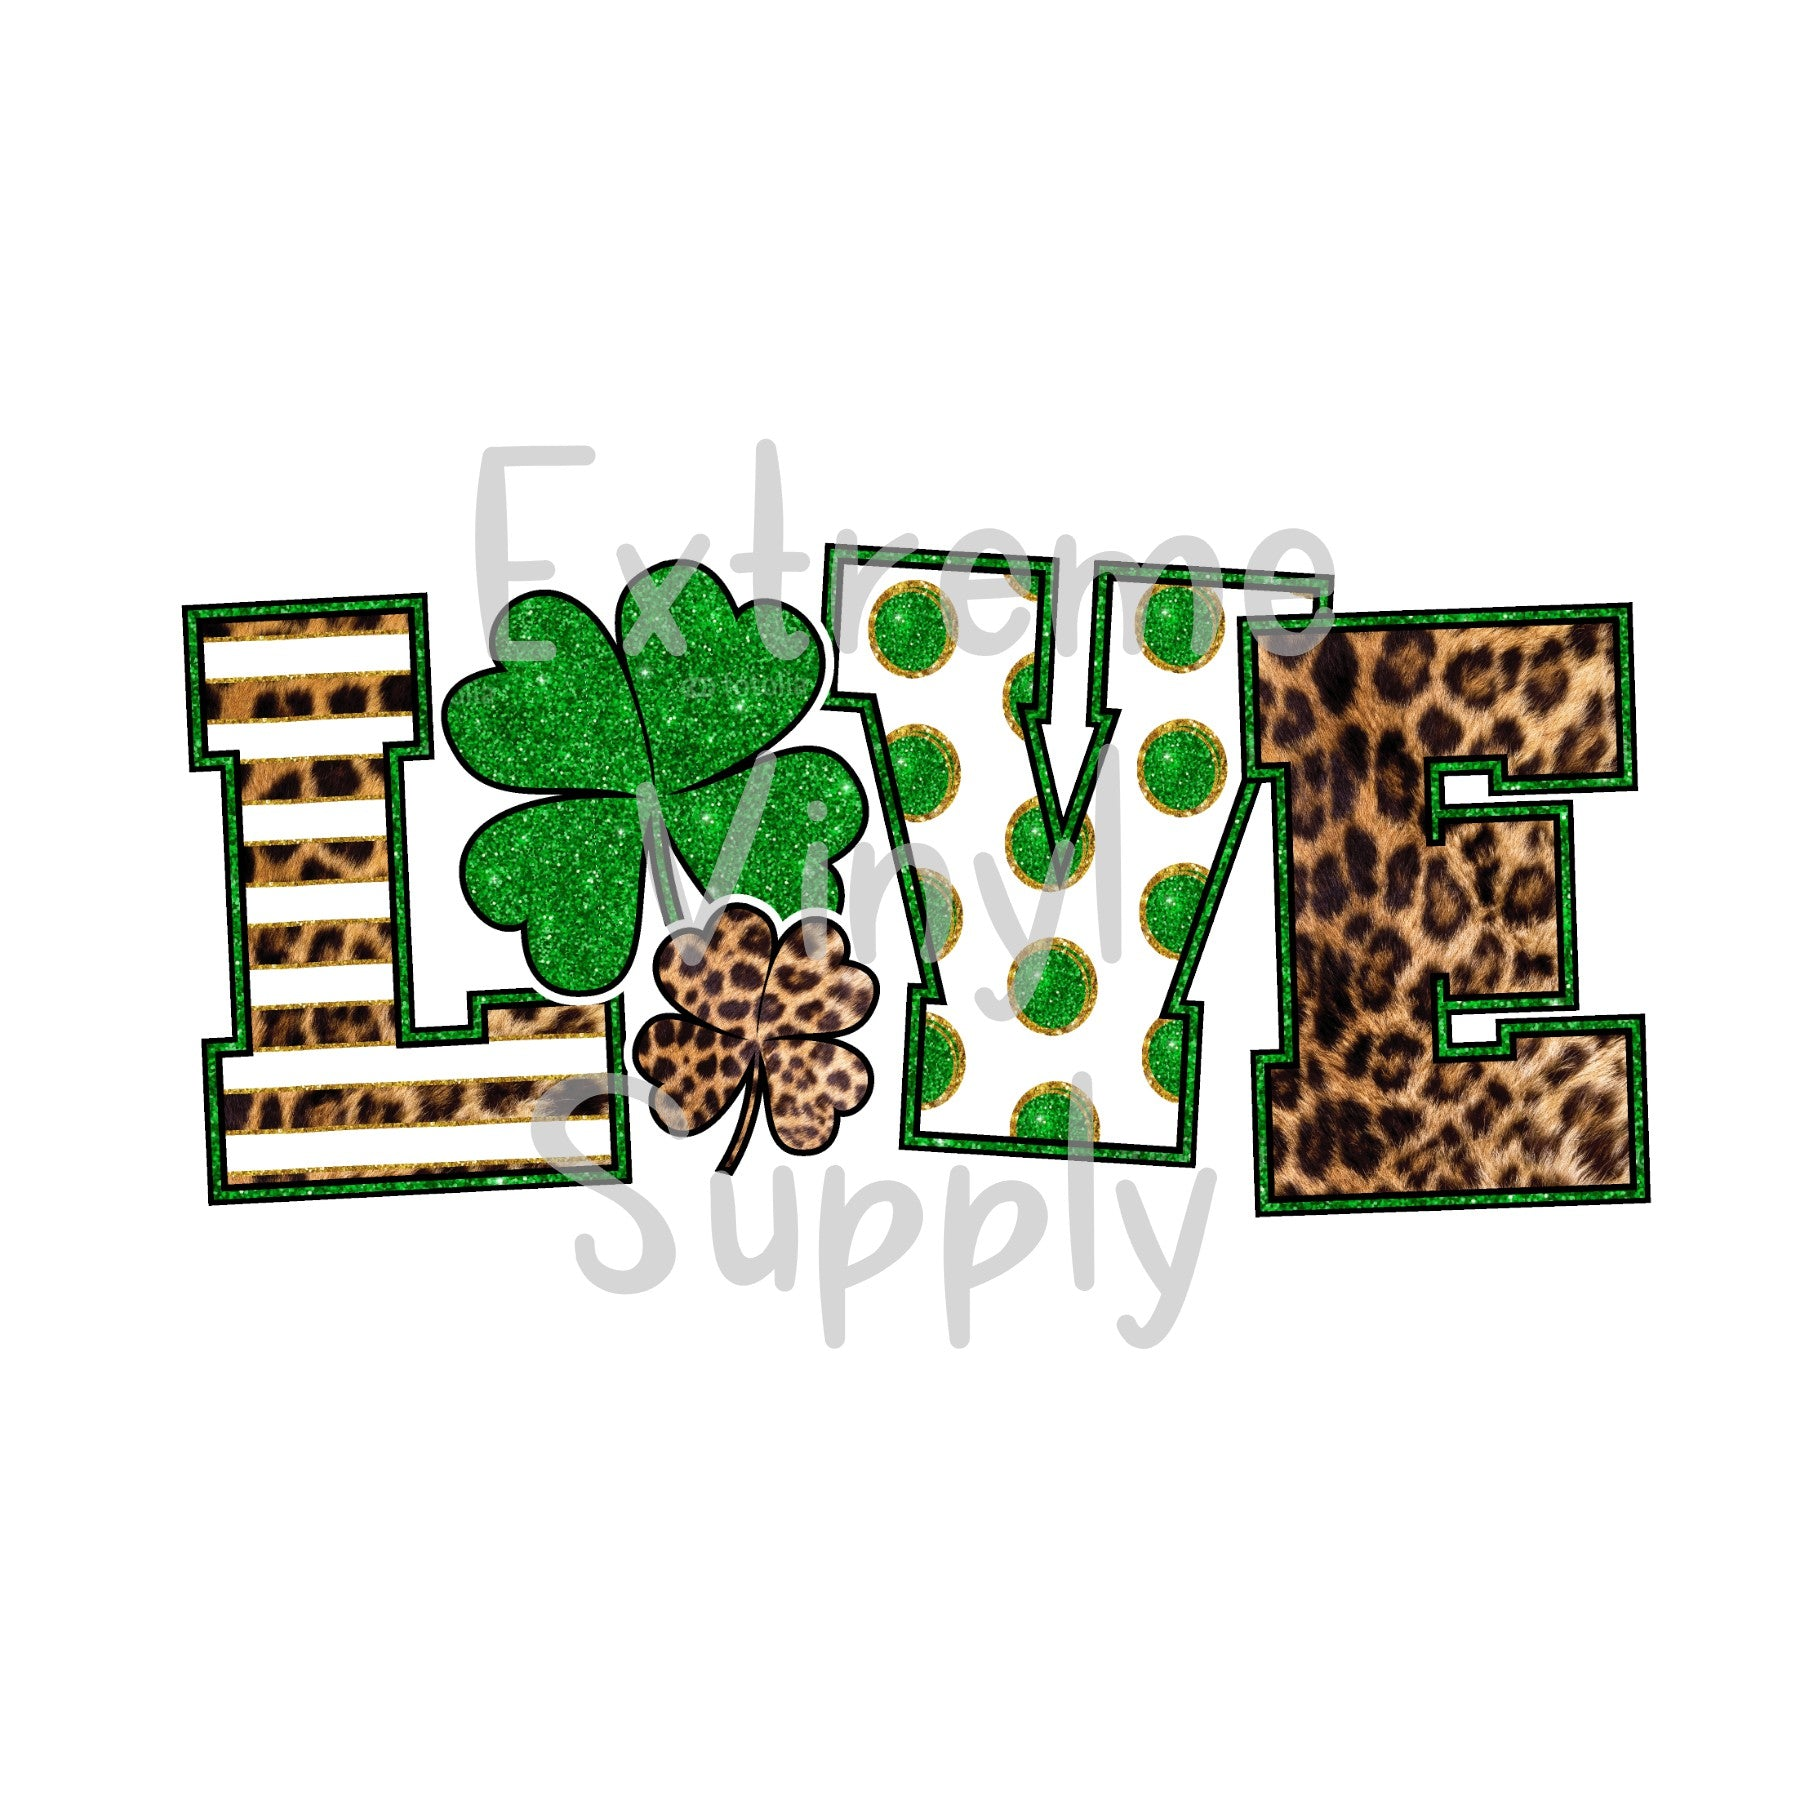 St. Patrick's Day Printed HTV Transfer or Sublimation